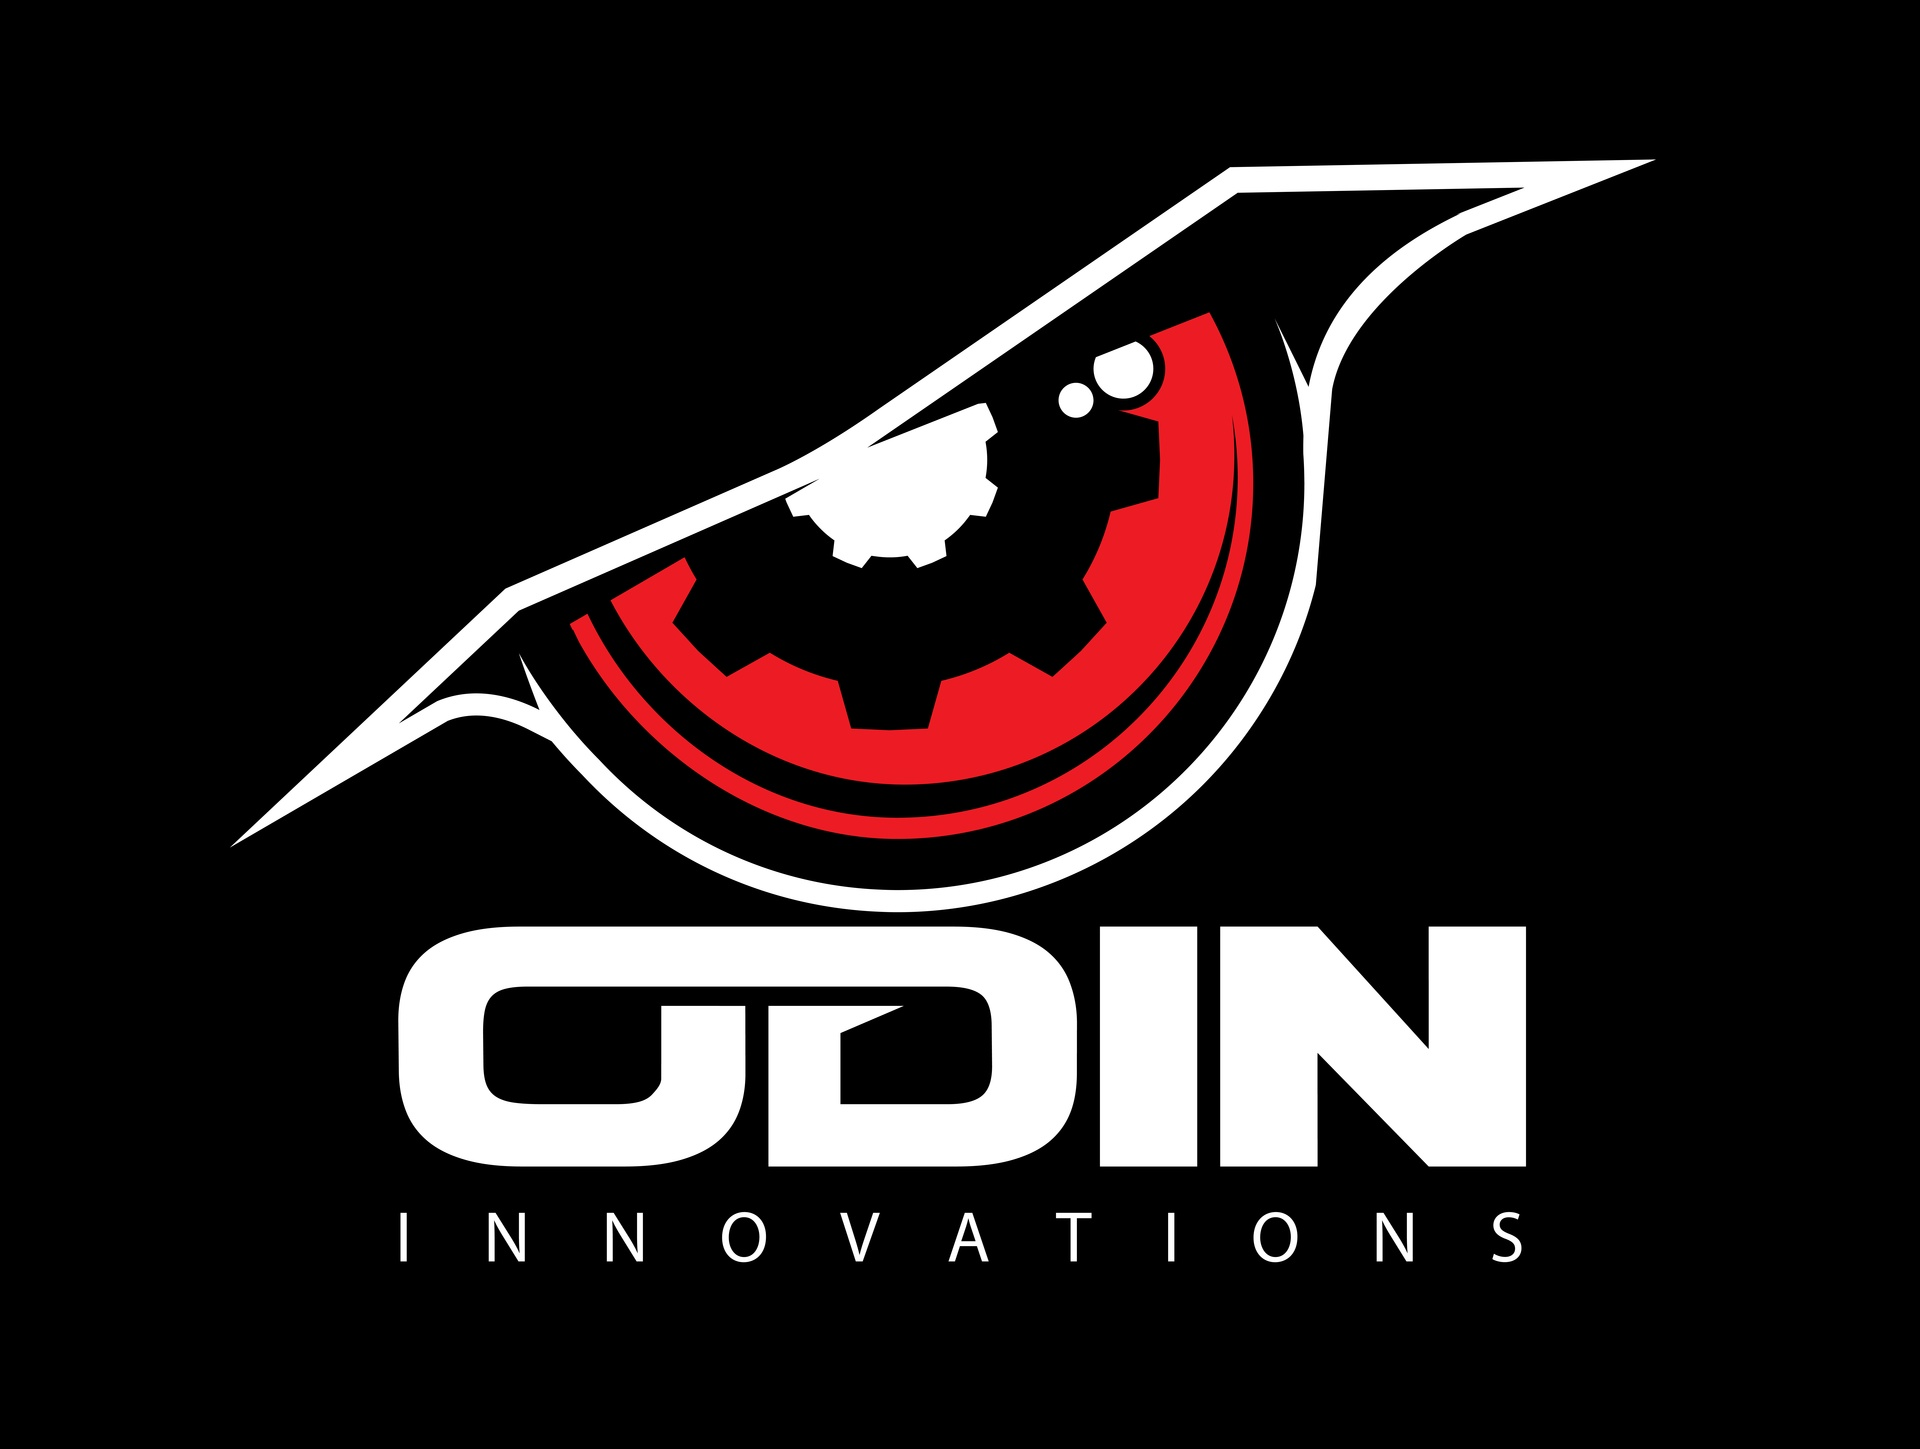 Odin innovation